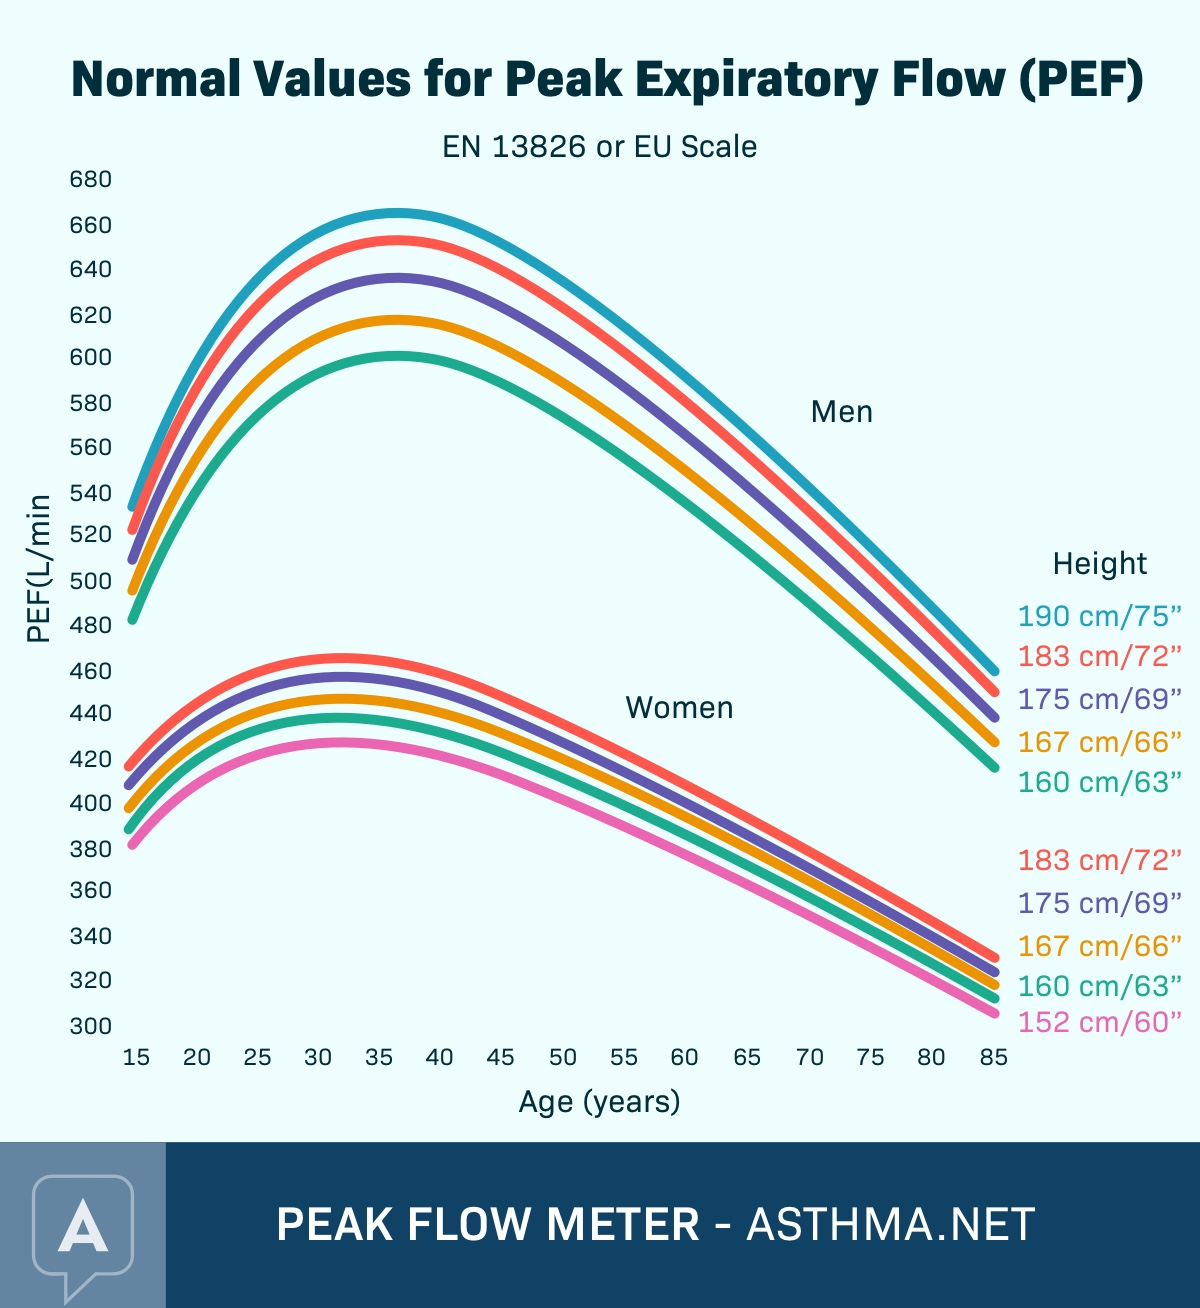 Graph of Normal Values for Peak Expiratory Flow for men and women, peaking around age 35 to 40